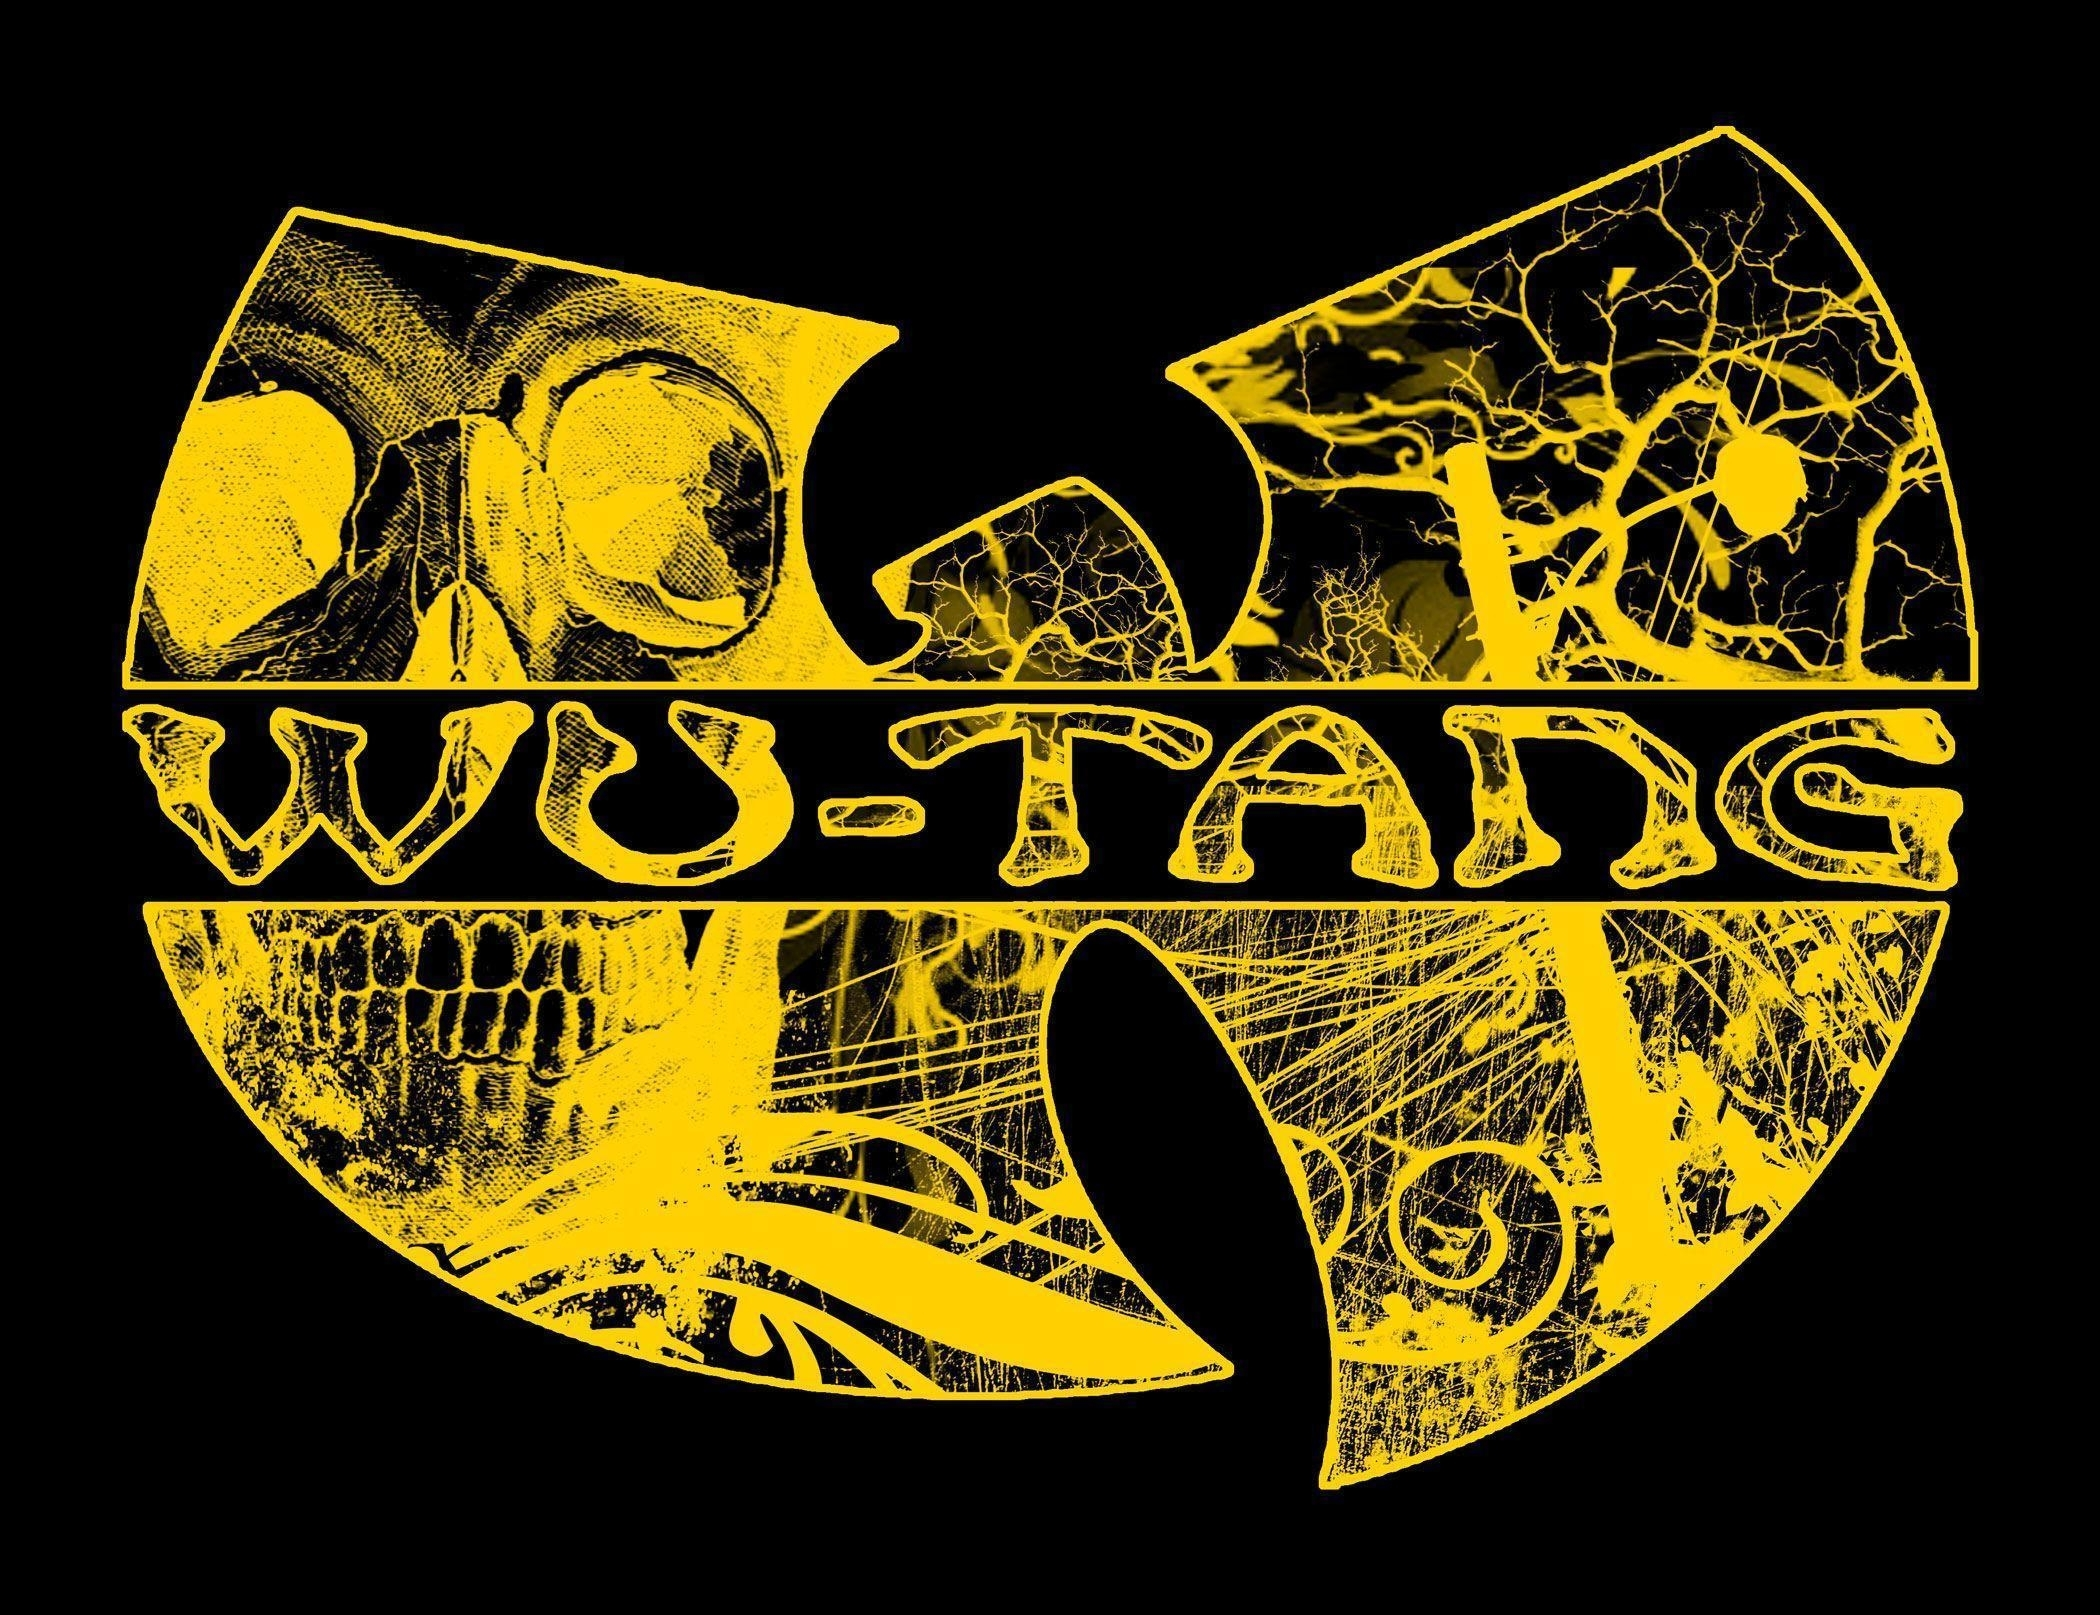 wu-tang clan wallpapers - wallpaper cave